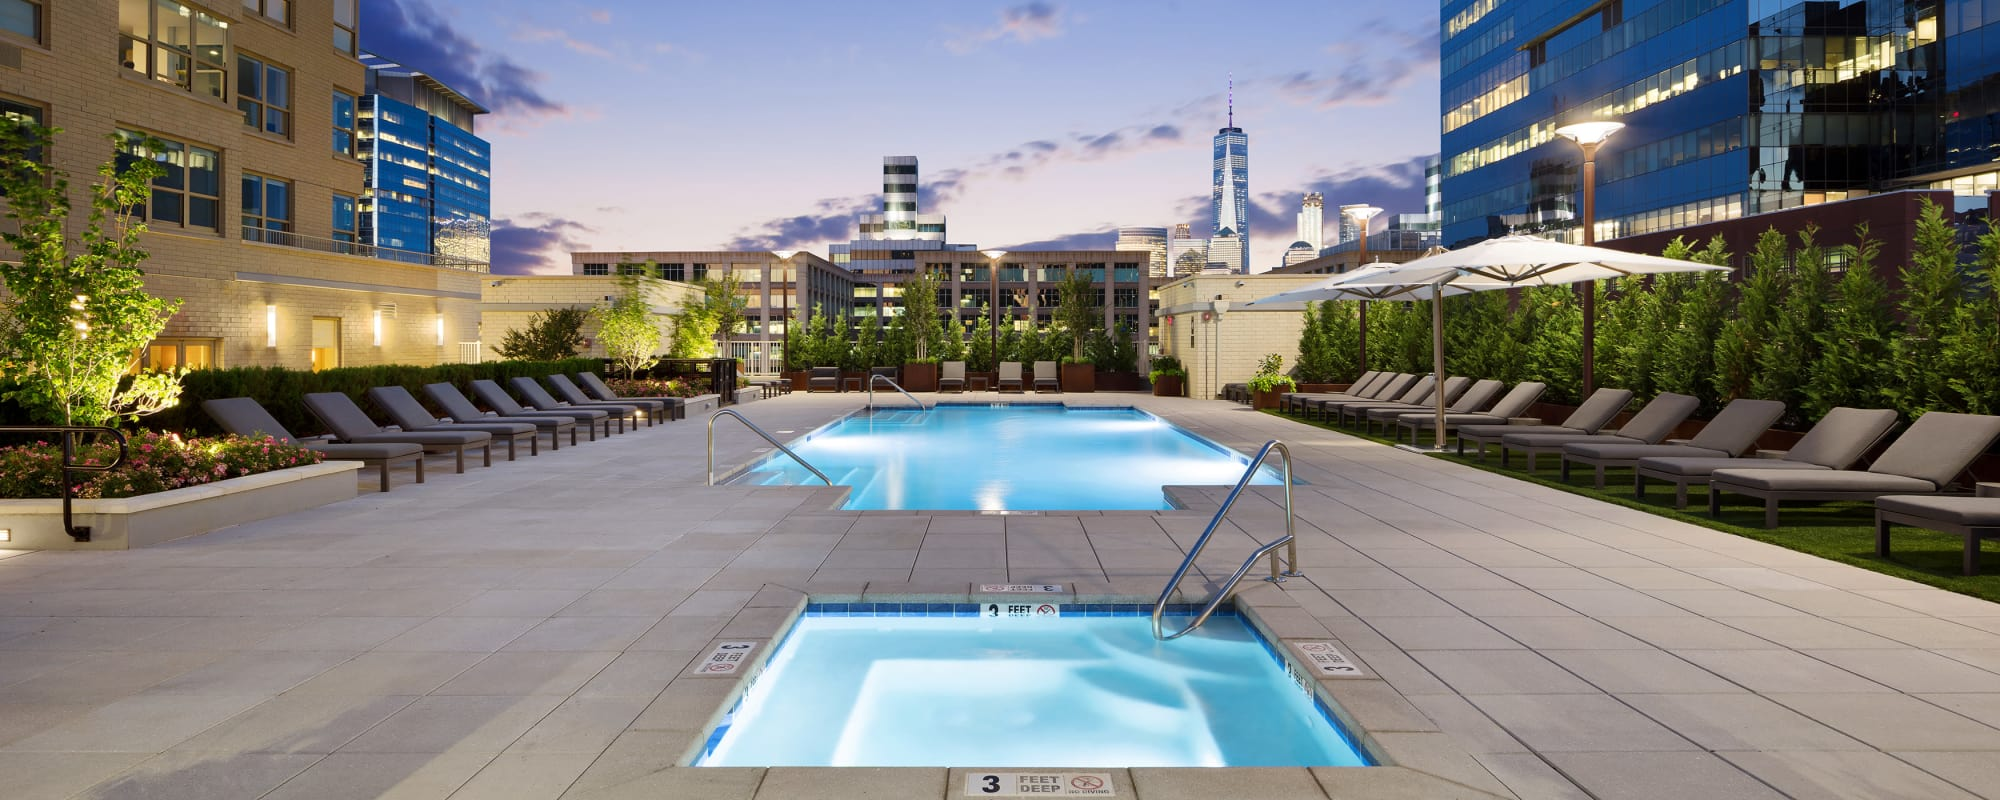 Swimming pool and hot tub at Trump Bay Street in Jersey City, New Jersey